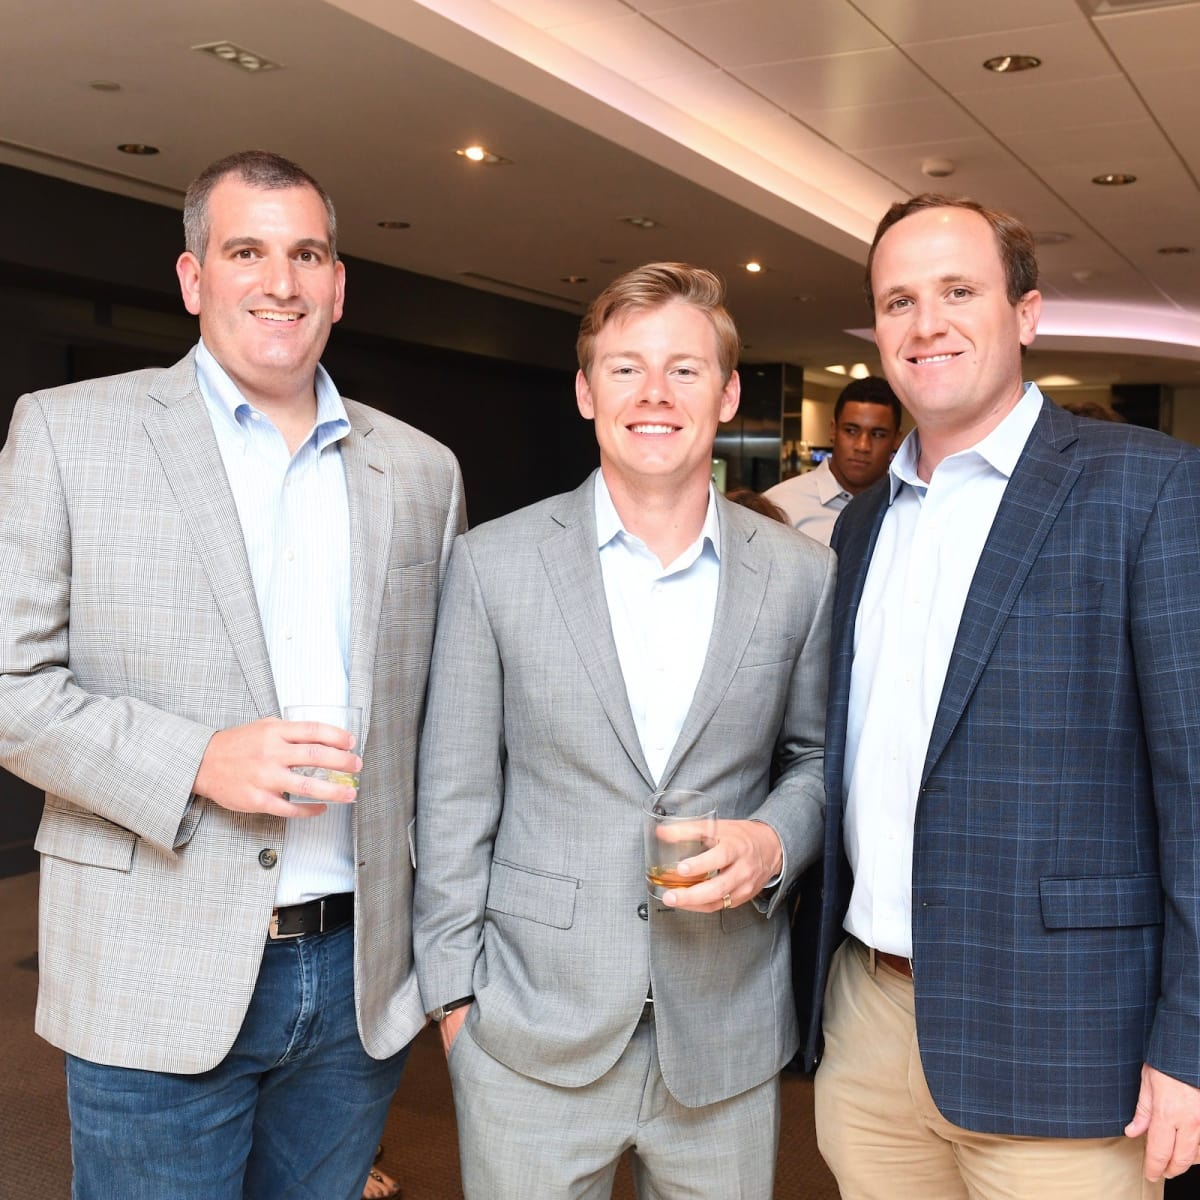 Matt Hibbets, Austin Alvis, Scott Thelander Guy's Night Out party at IW Marks Jewelers